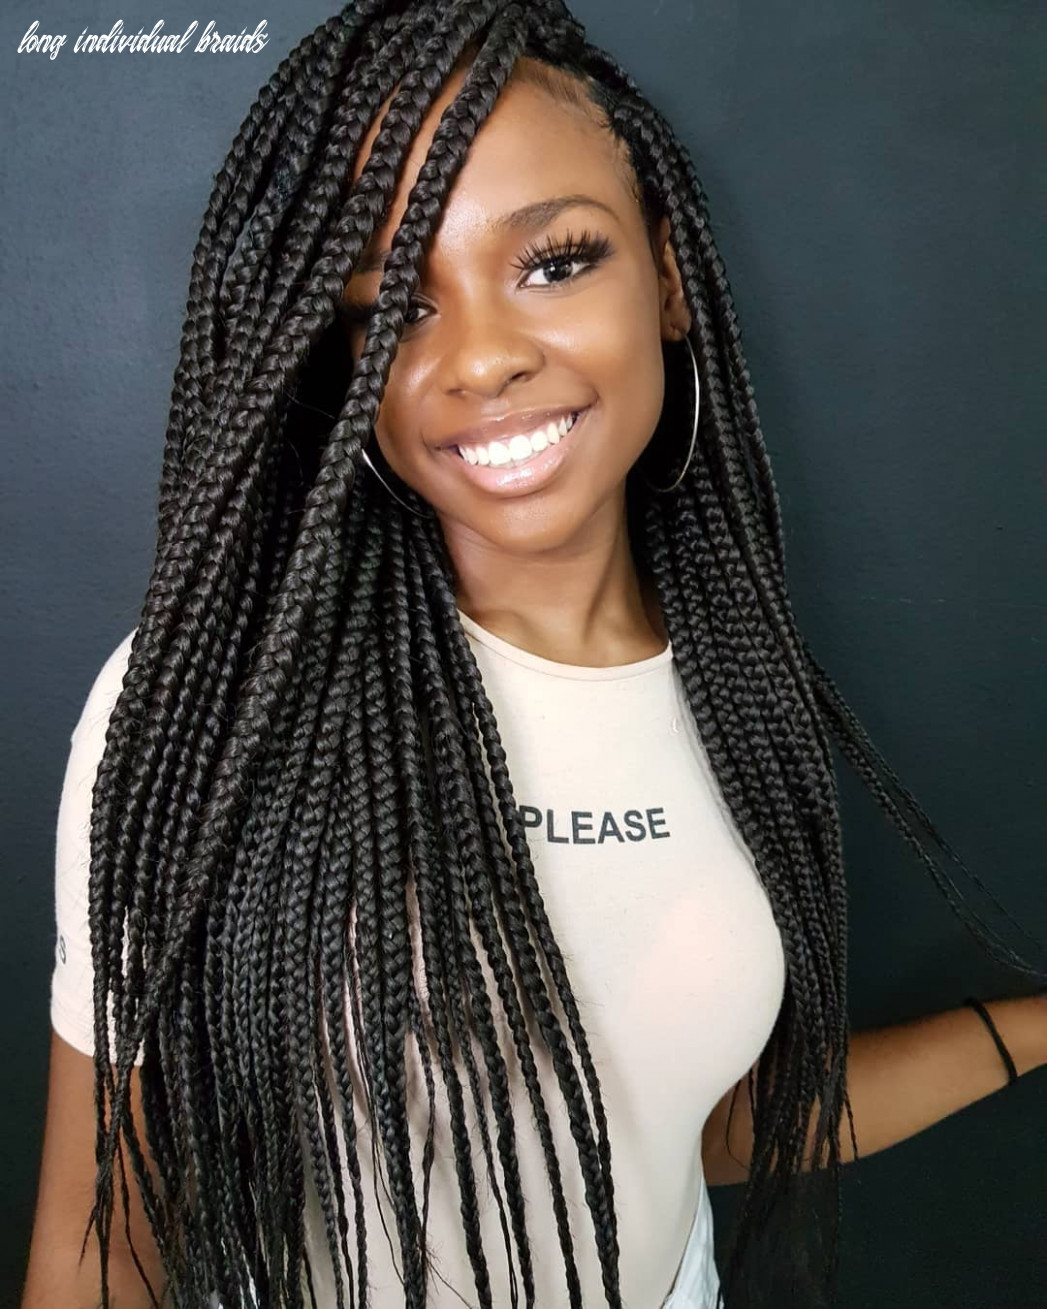 10 trendy box braids styles stylists recommend for 10 hair adviser long individual braids